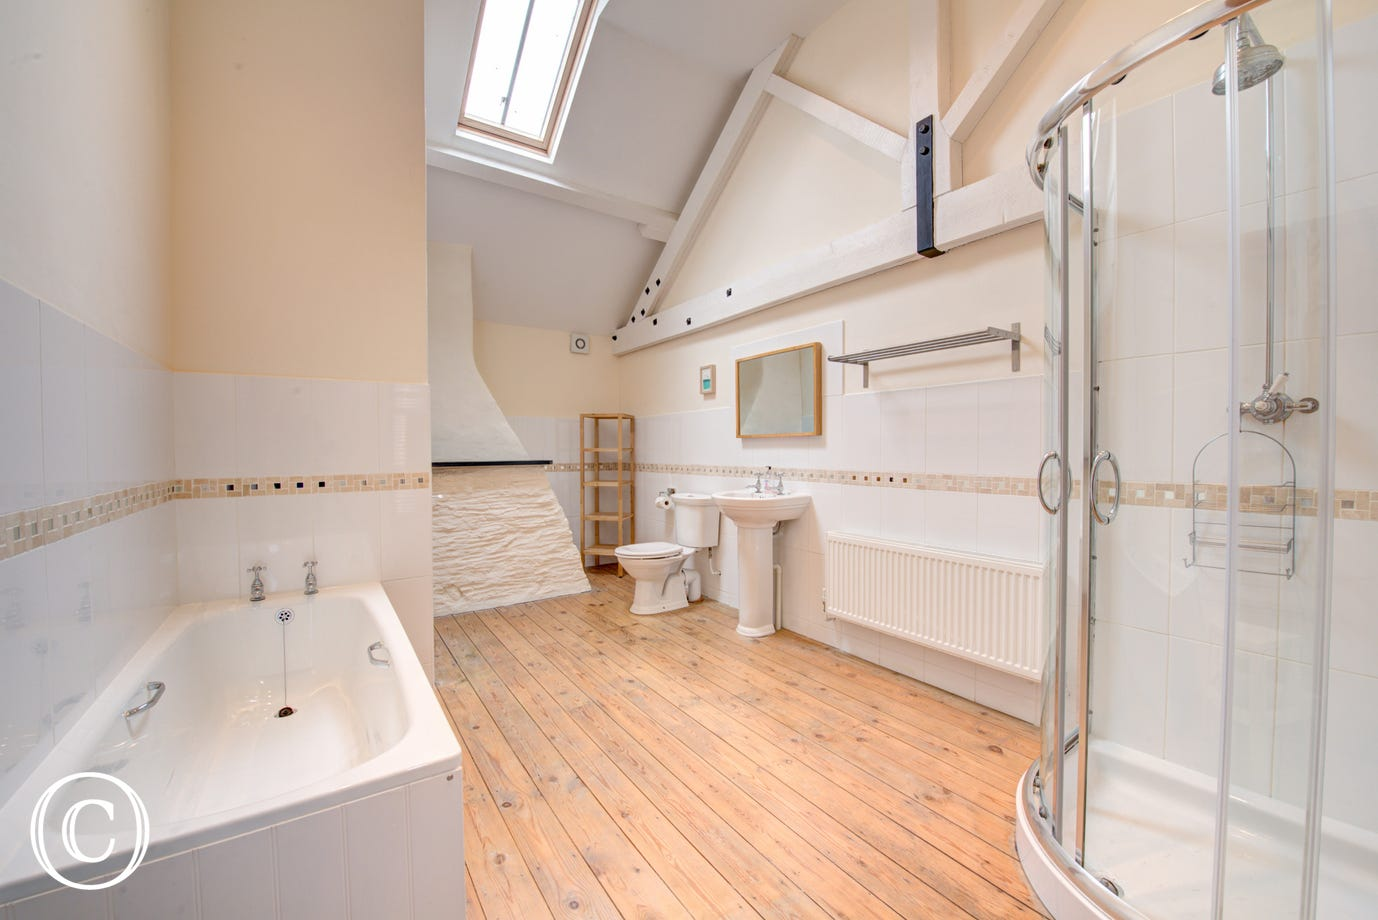 The bathroom is very generously apportioned with both a bath and separate corner powerful shower